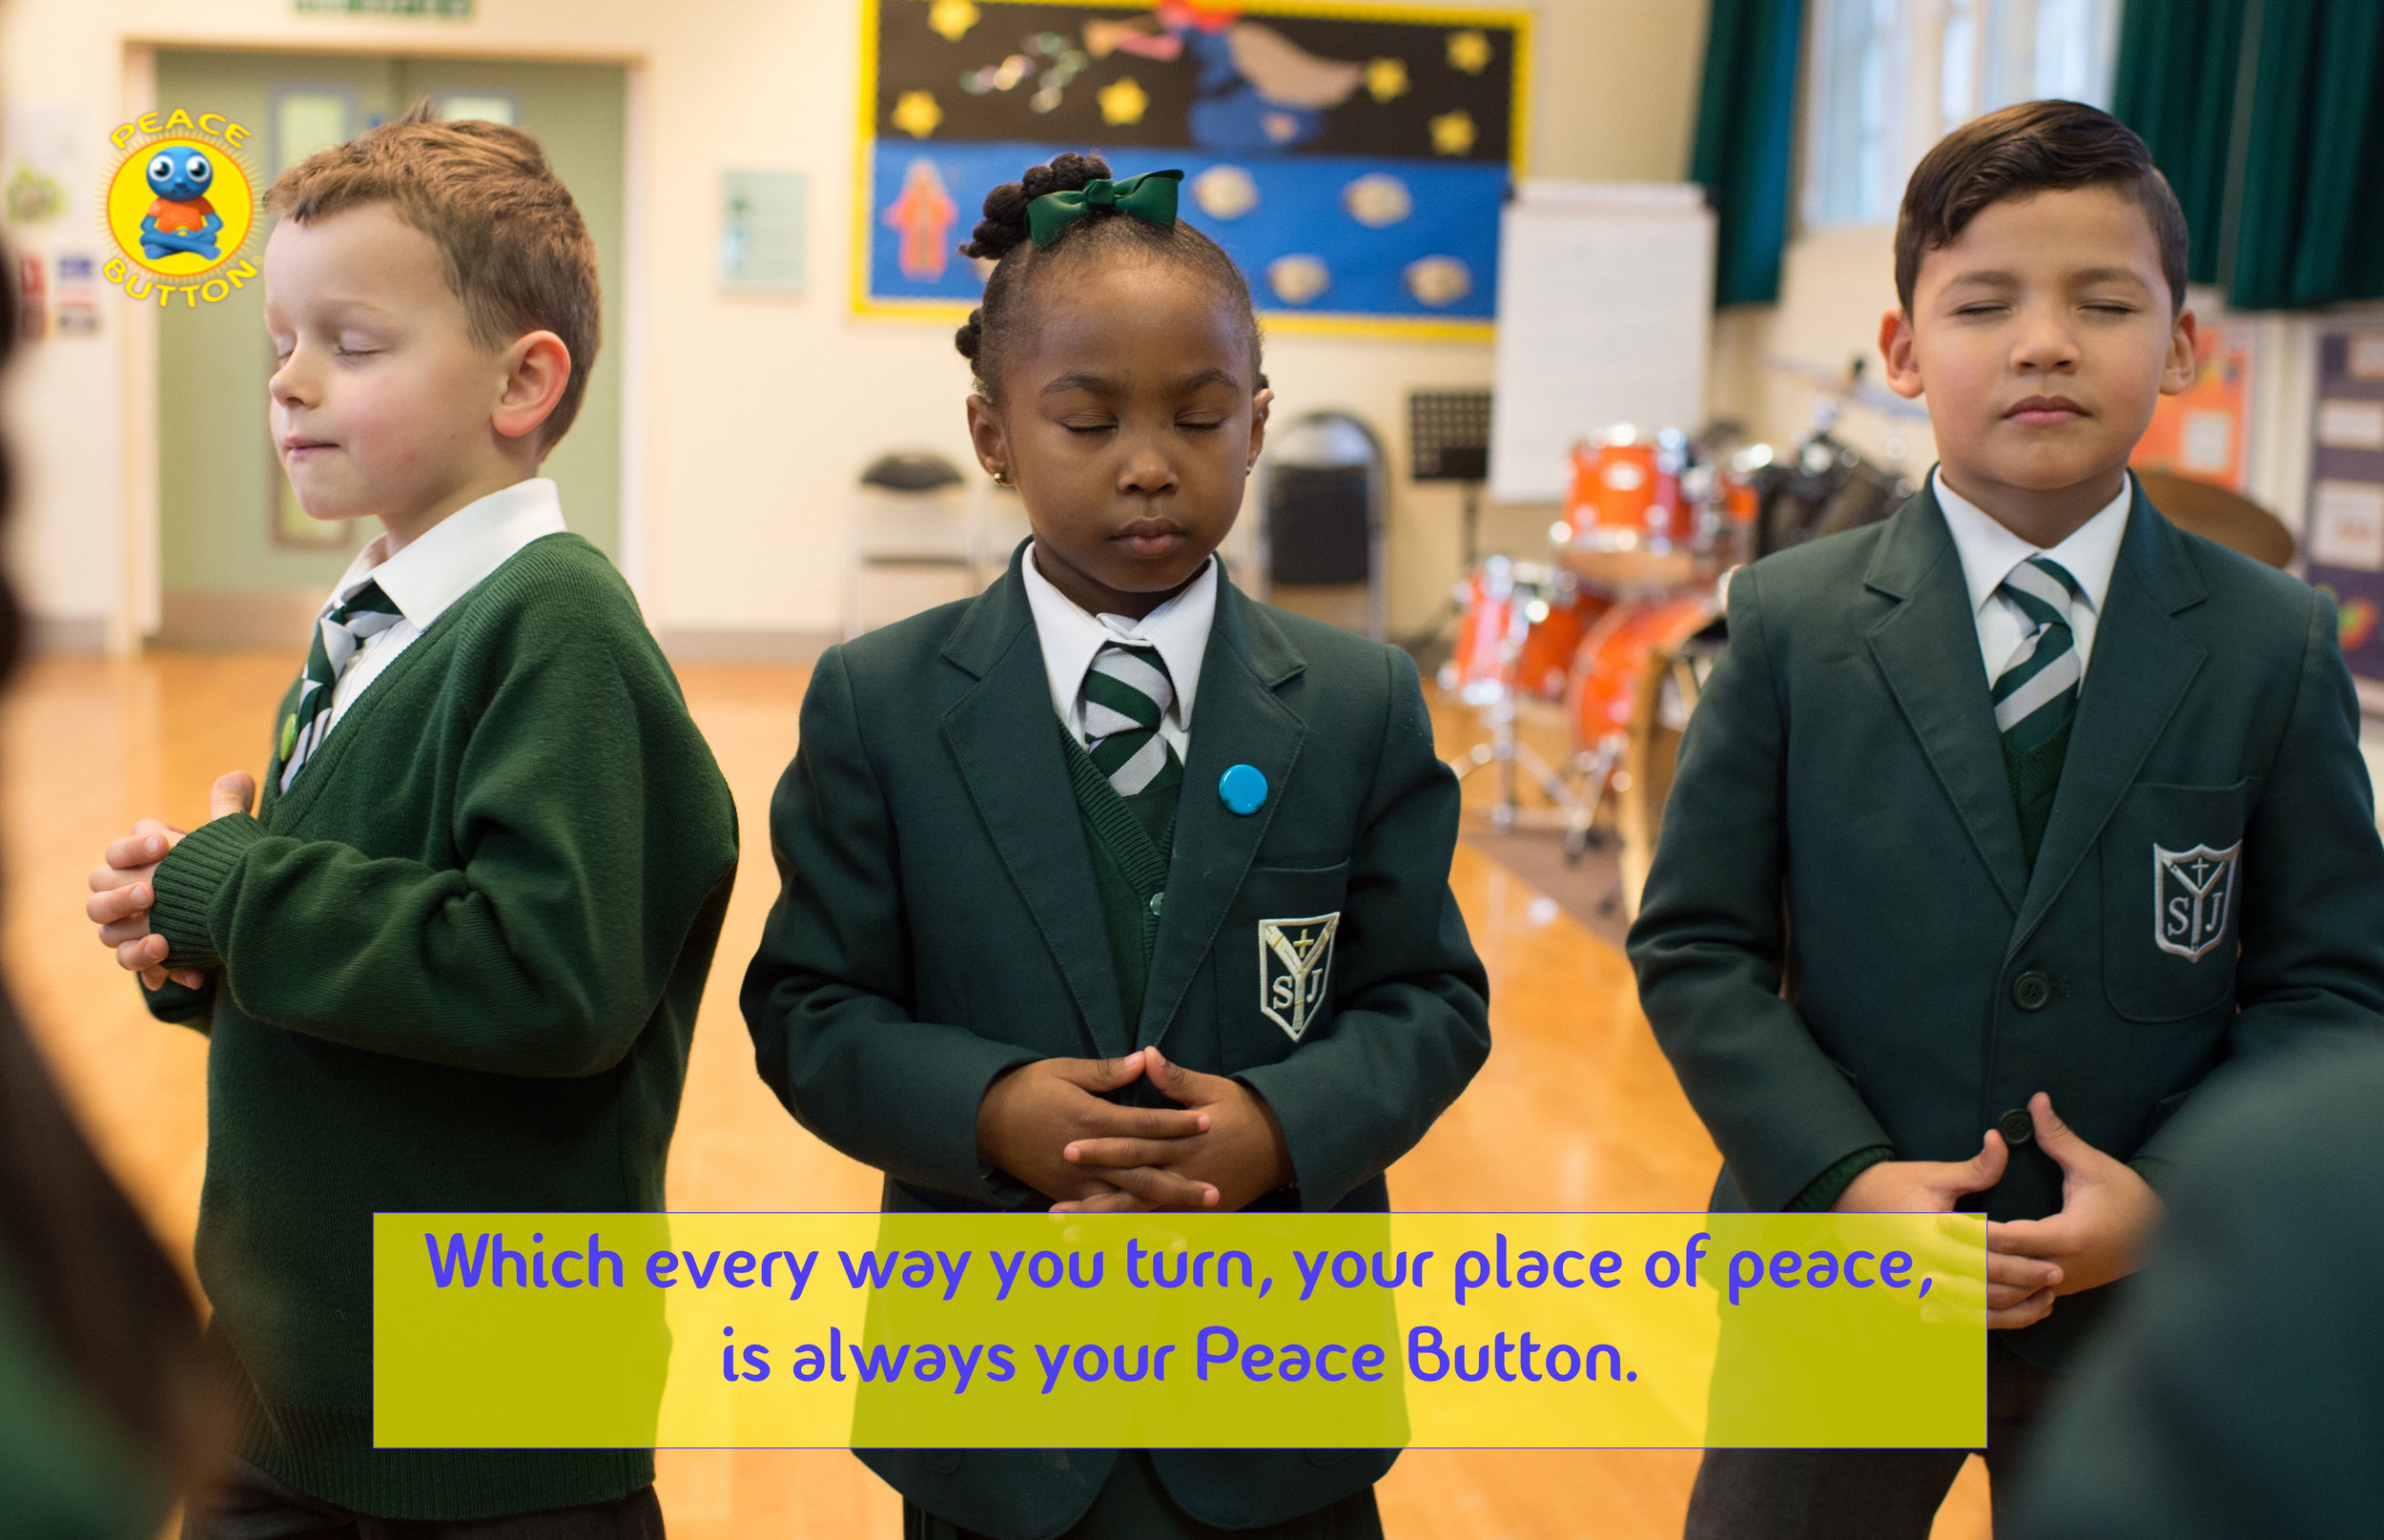 Your Peace Button is always your centre